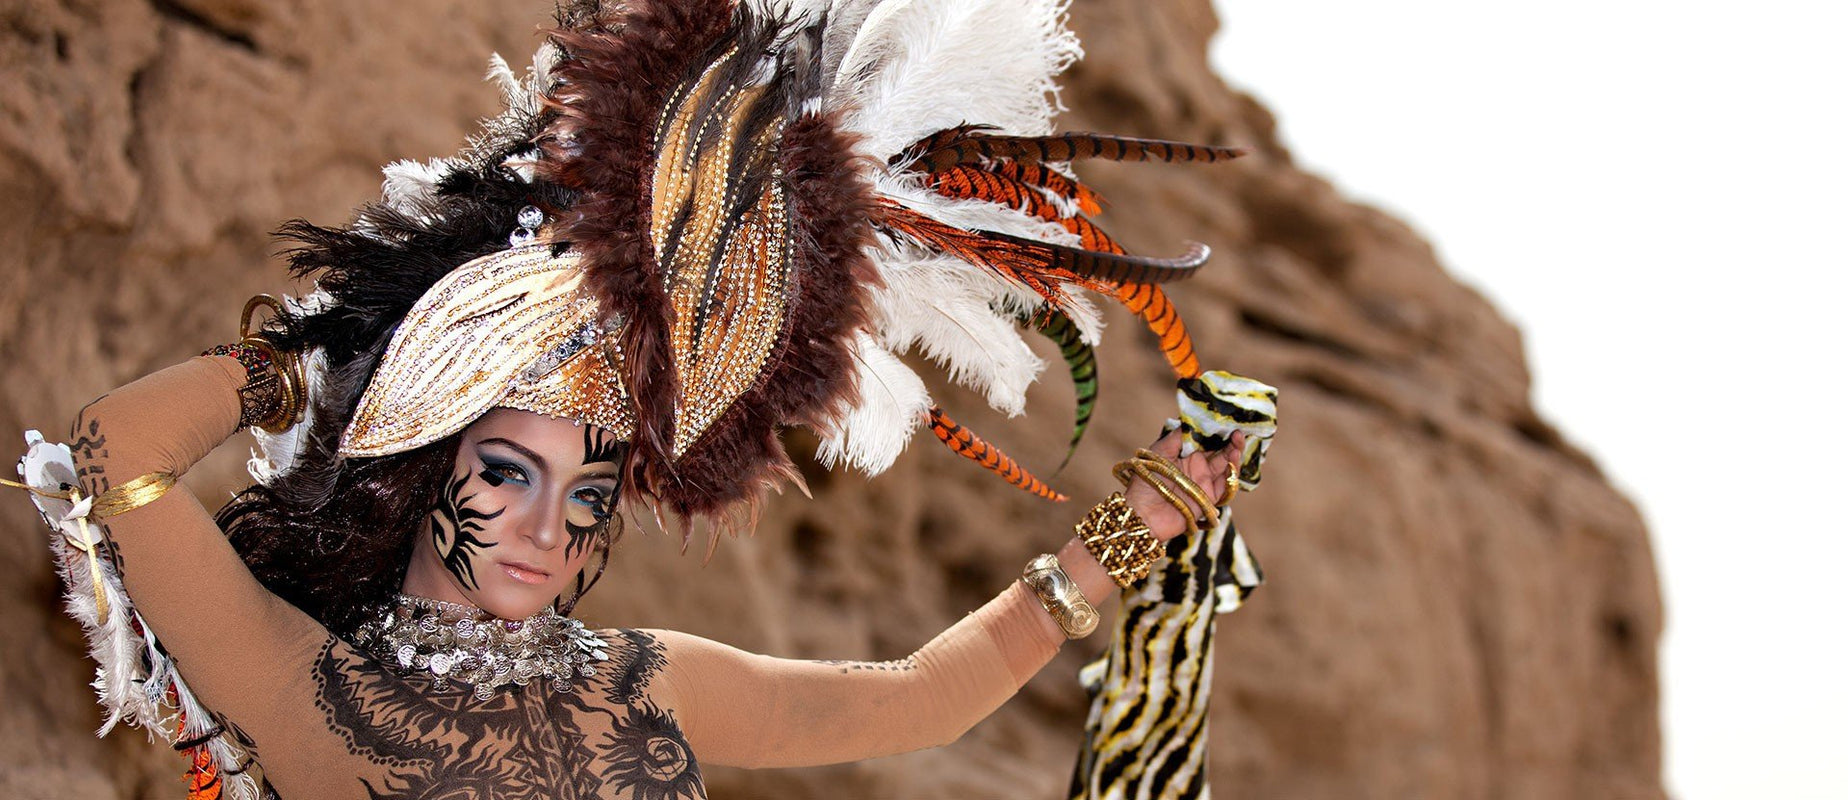 b4e81671033 Ostrich | Peacock | Pheasant | Turkey | Coque | Duck. Vast variety of  Feathers